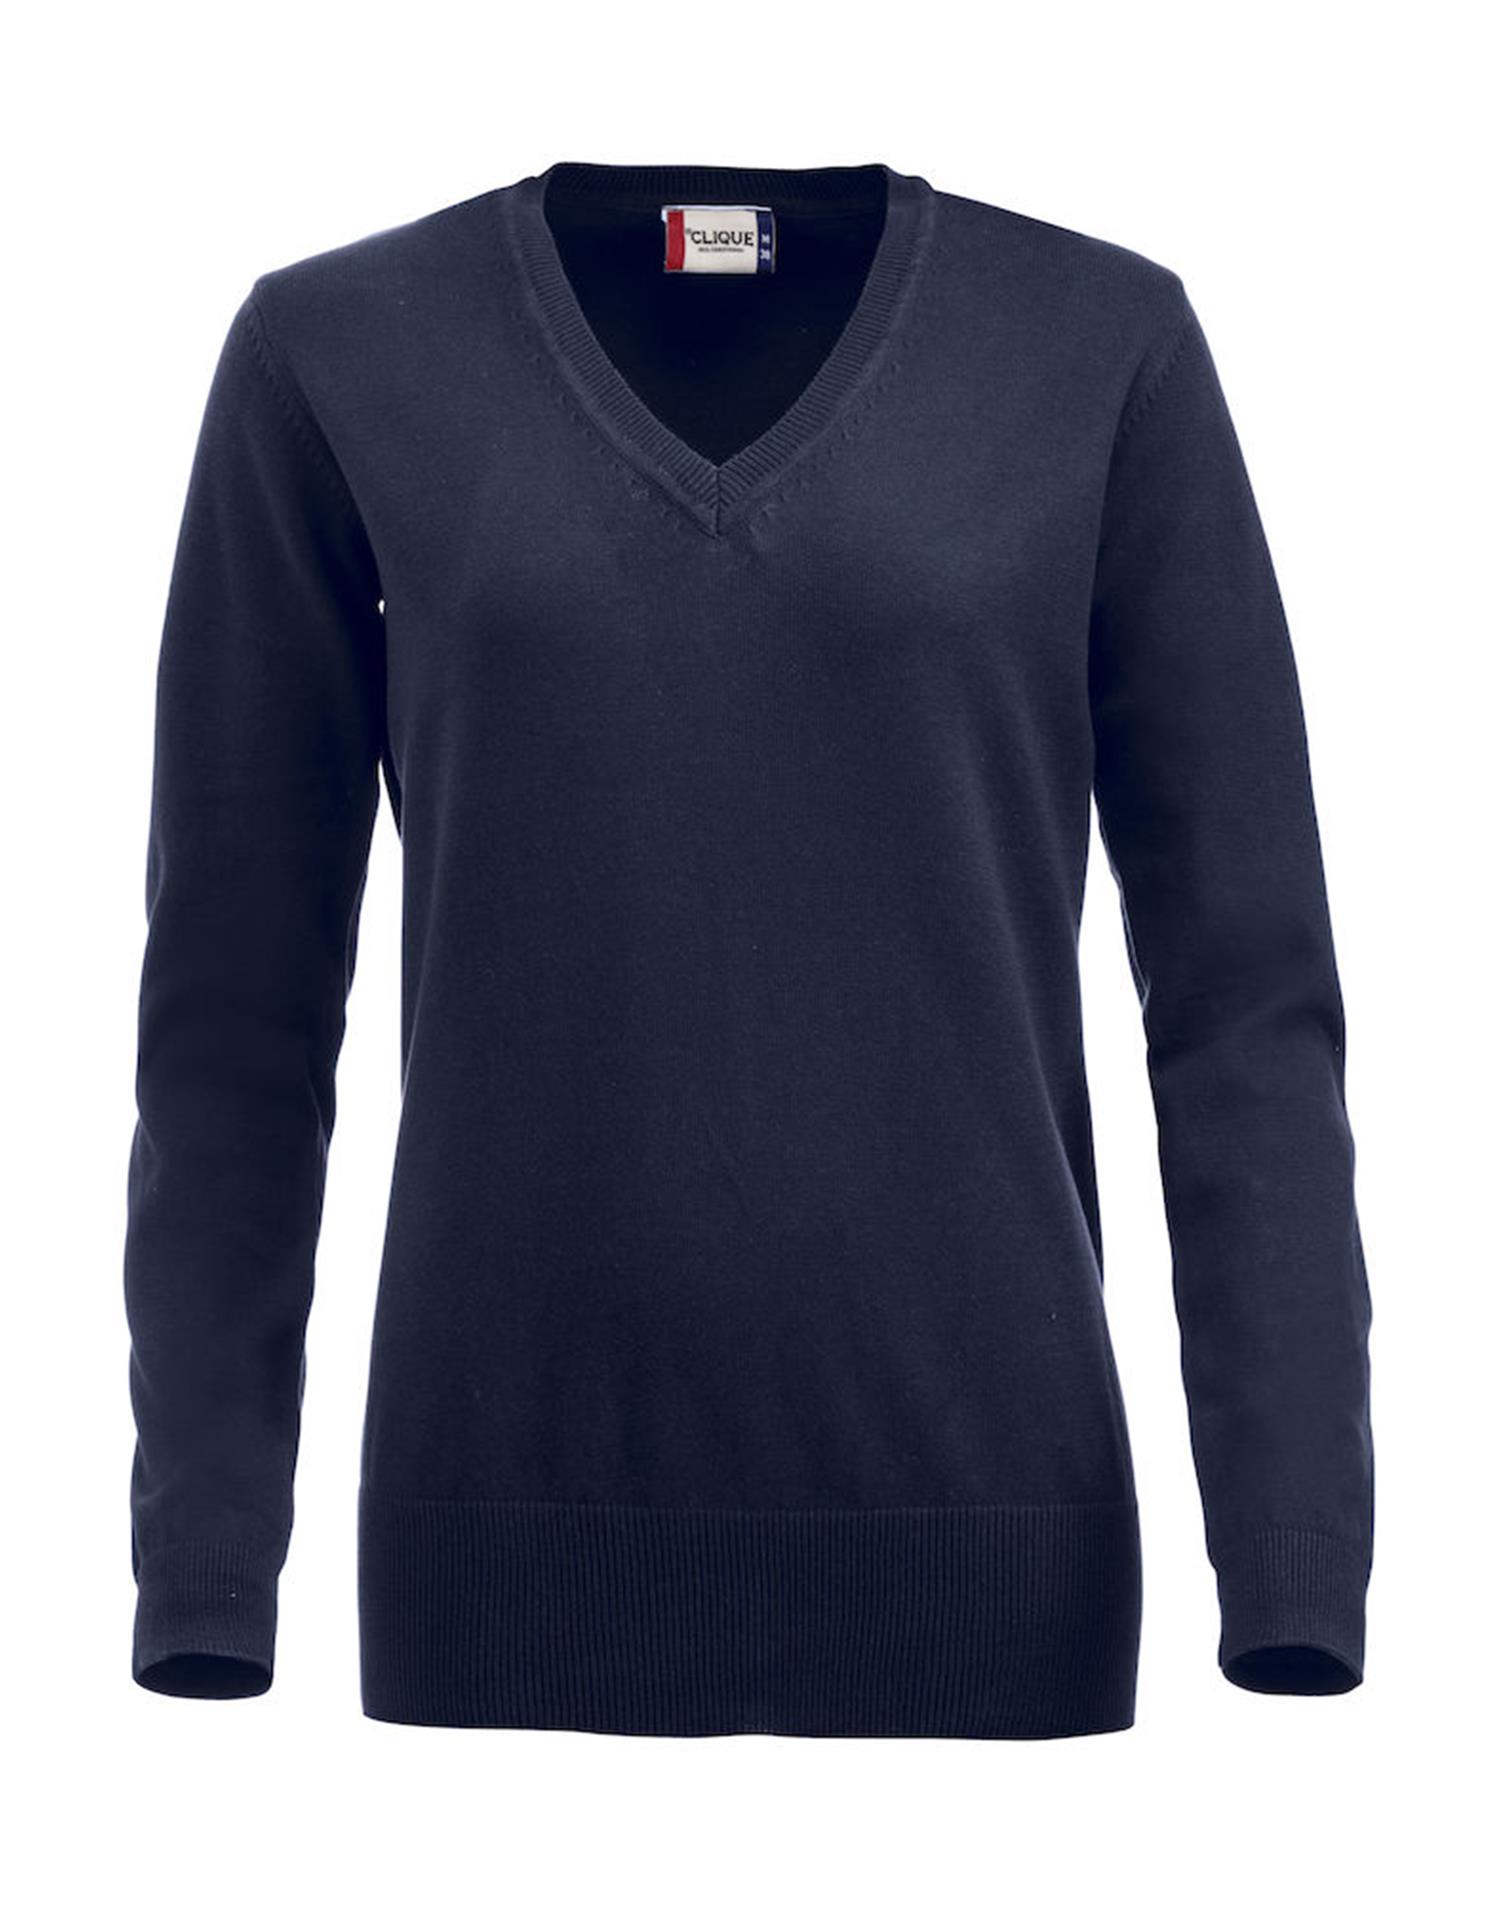 NewWave Maglioncino donna (L - BLU NAVY)